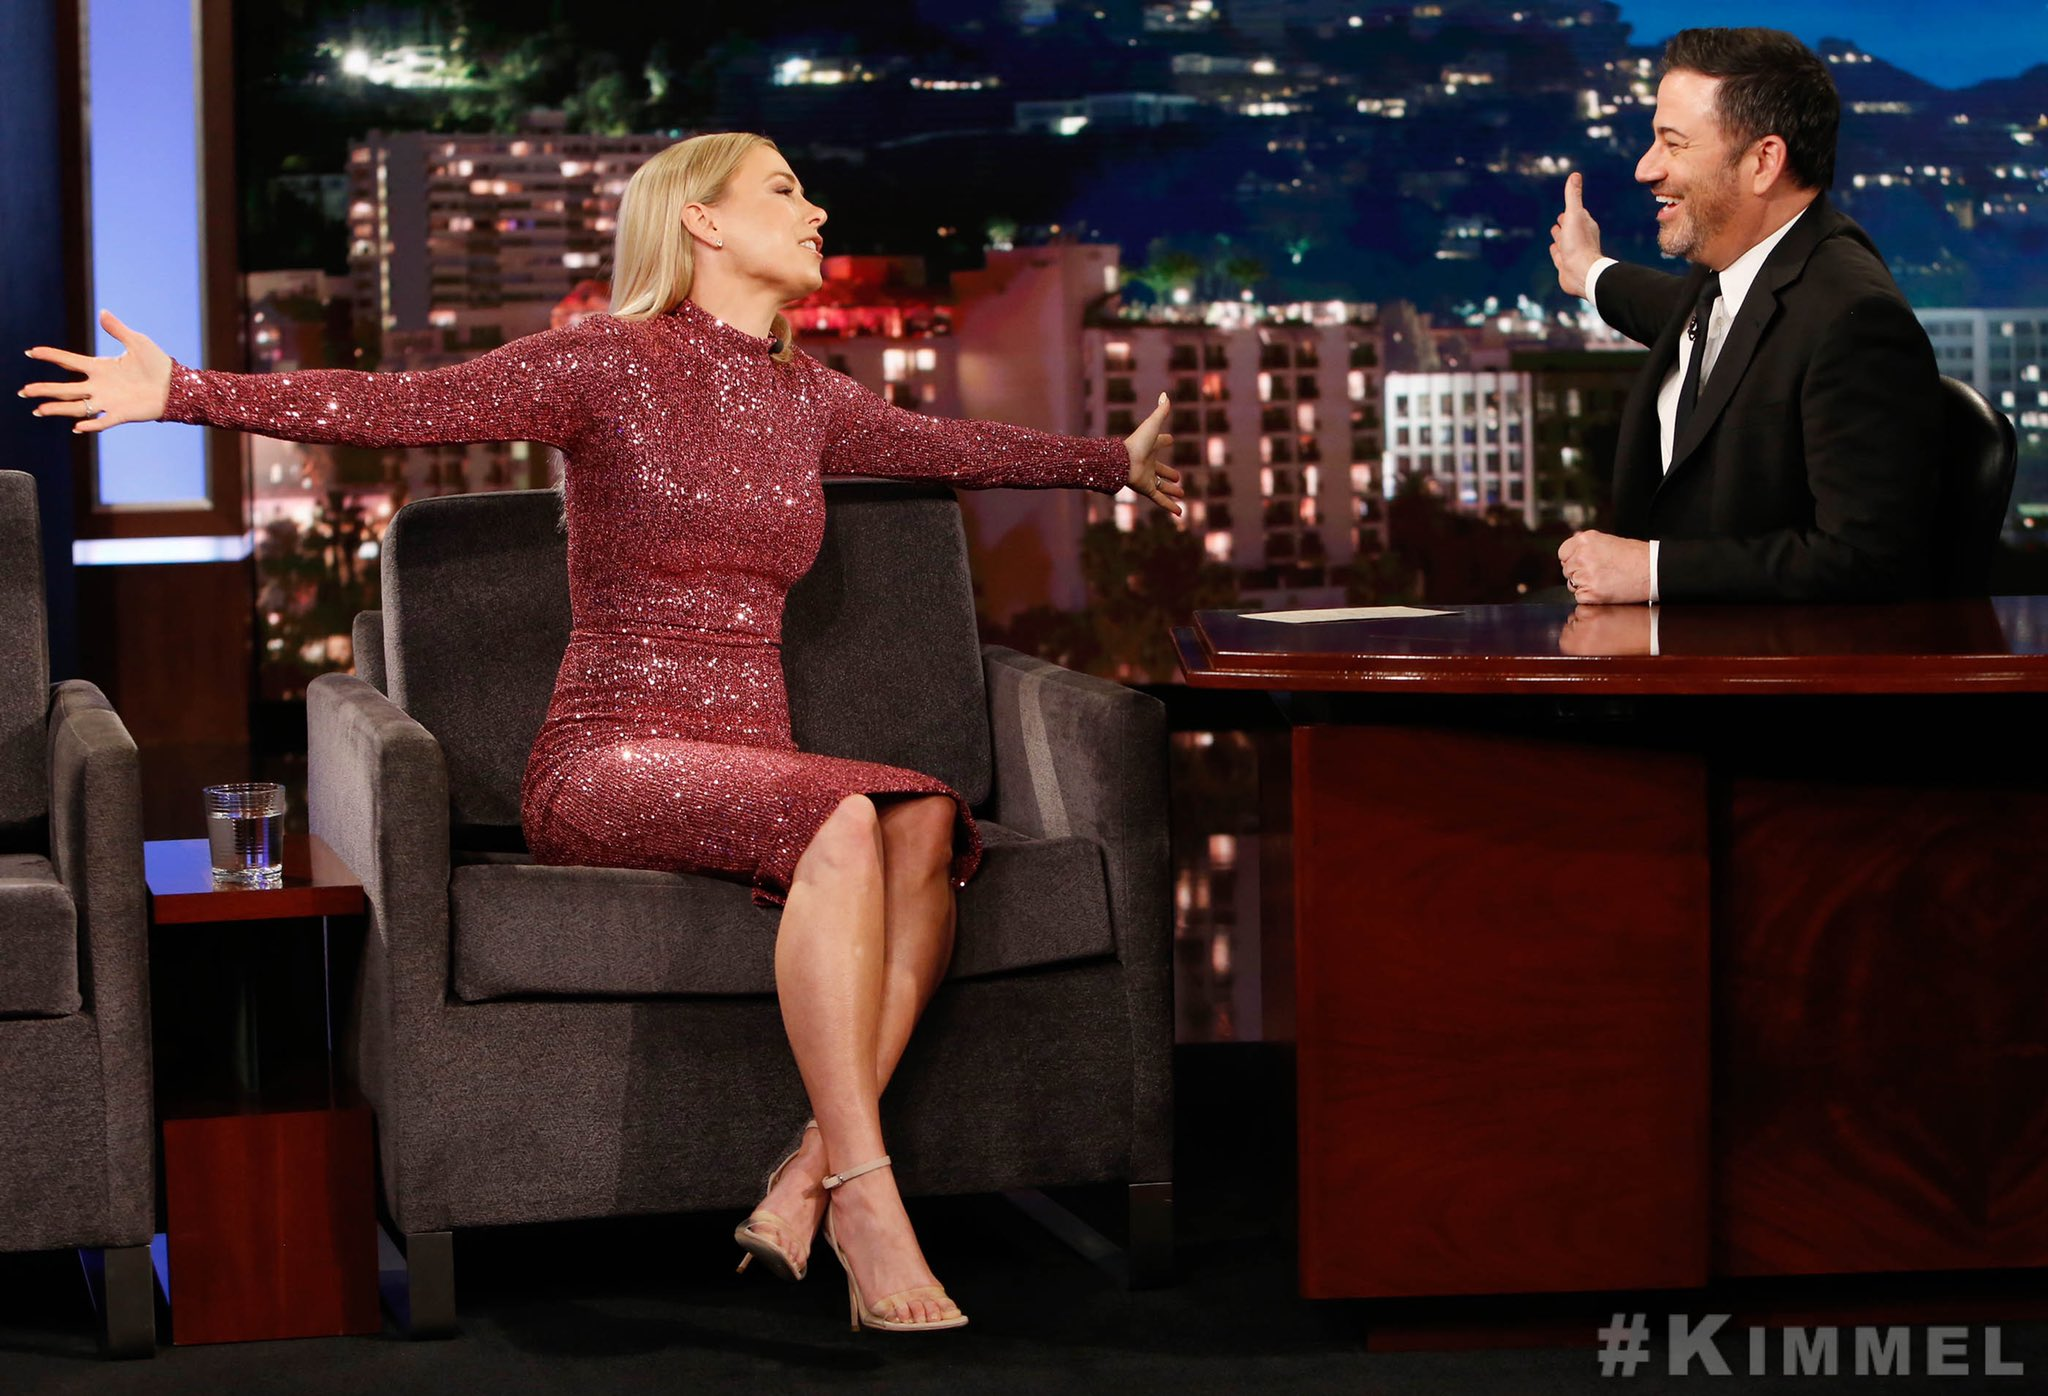 Iliza Shlesinger On Twitter Https T Co 11ccu2q4q3 Check Out My Couch Time On Jimmykimmellive